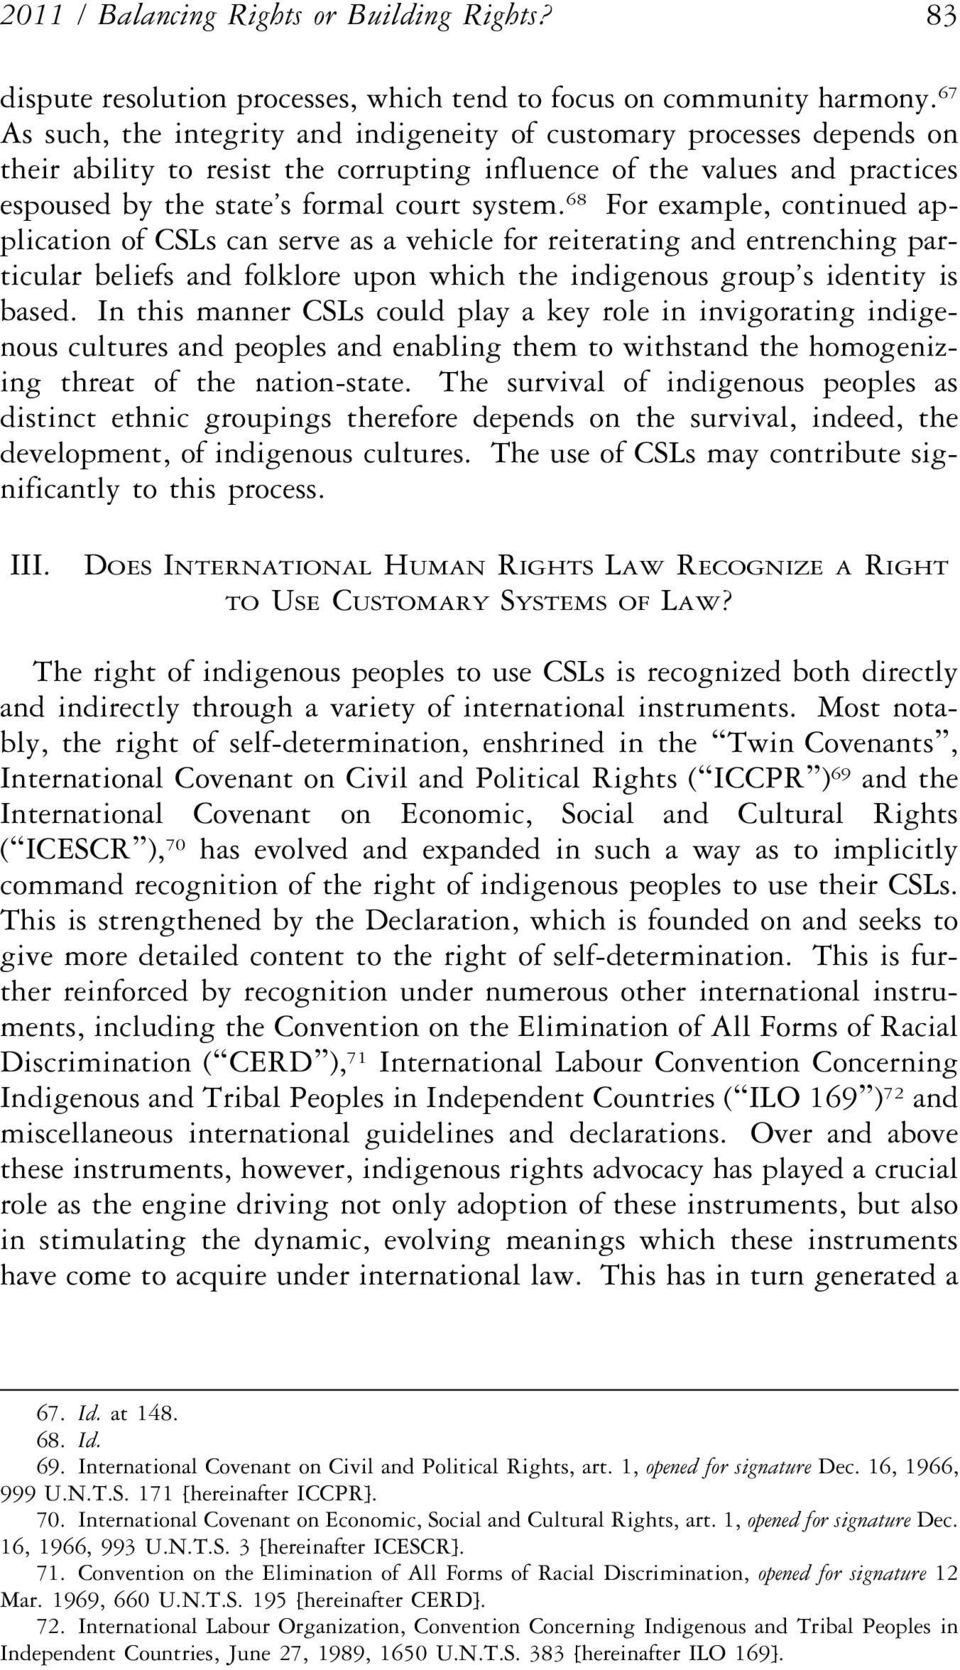 68 For example, continued application of CSLs can serve as a vehicle for reiterating and entrenching particular beliefs and folklore upon which the indigenous group s identity is based.